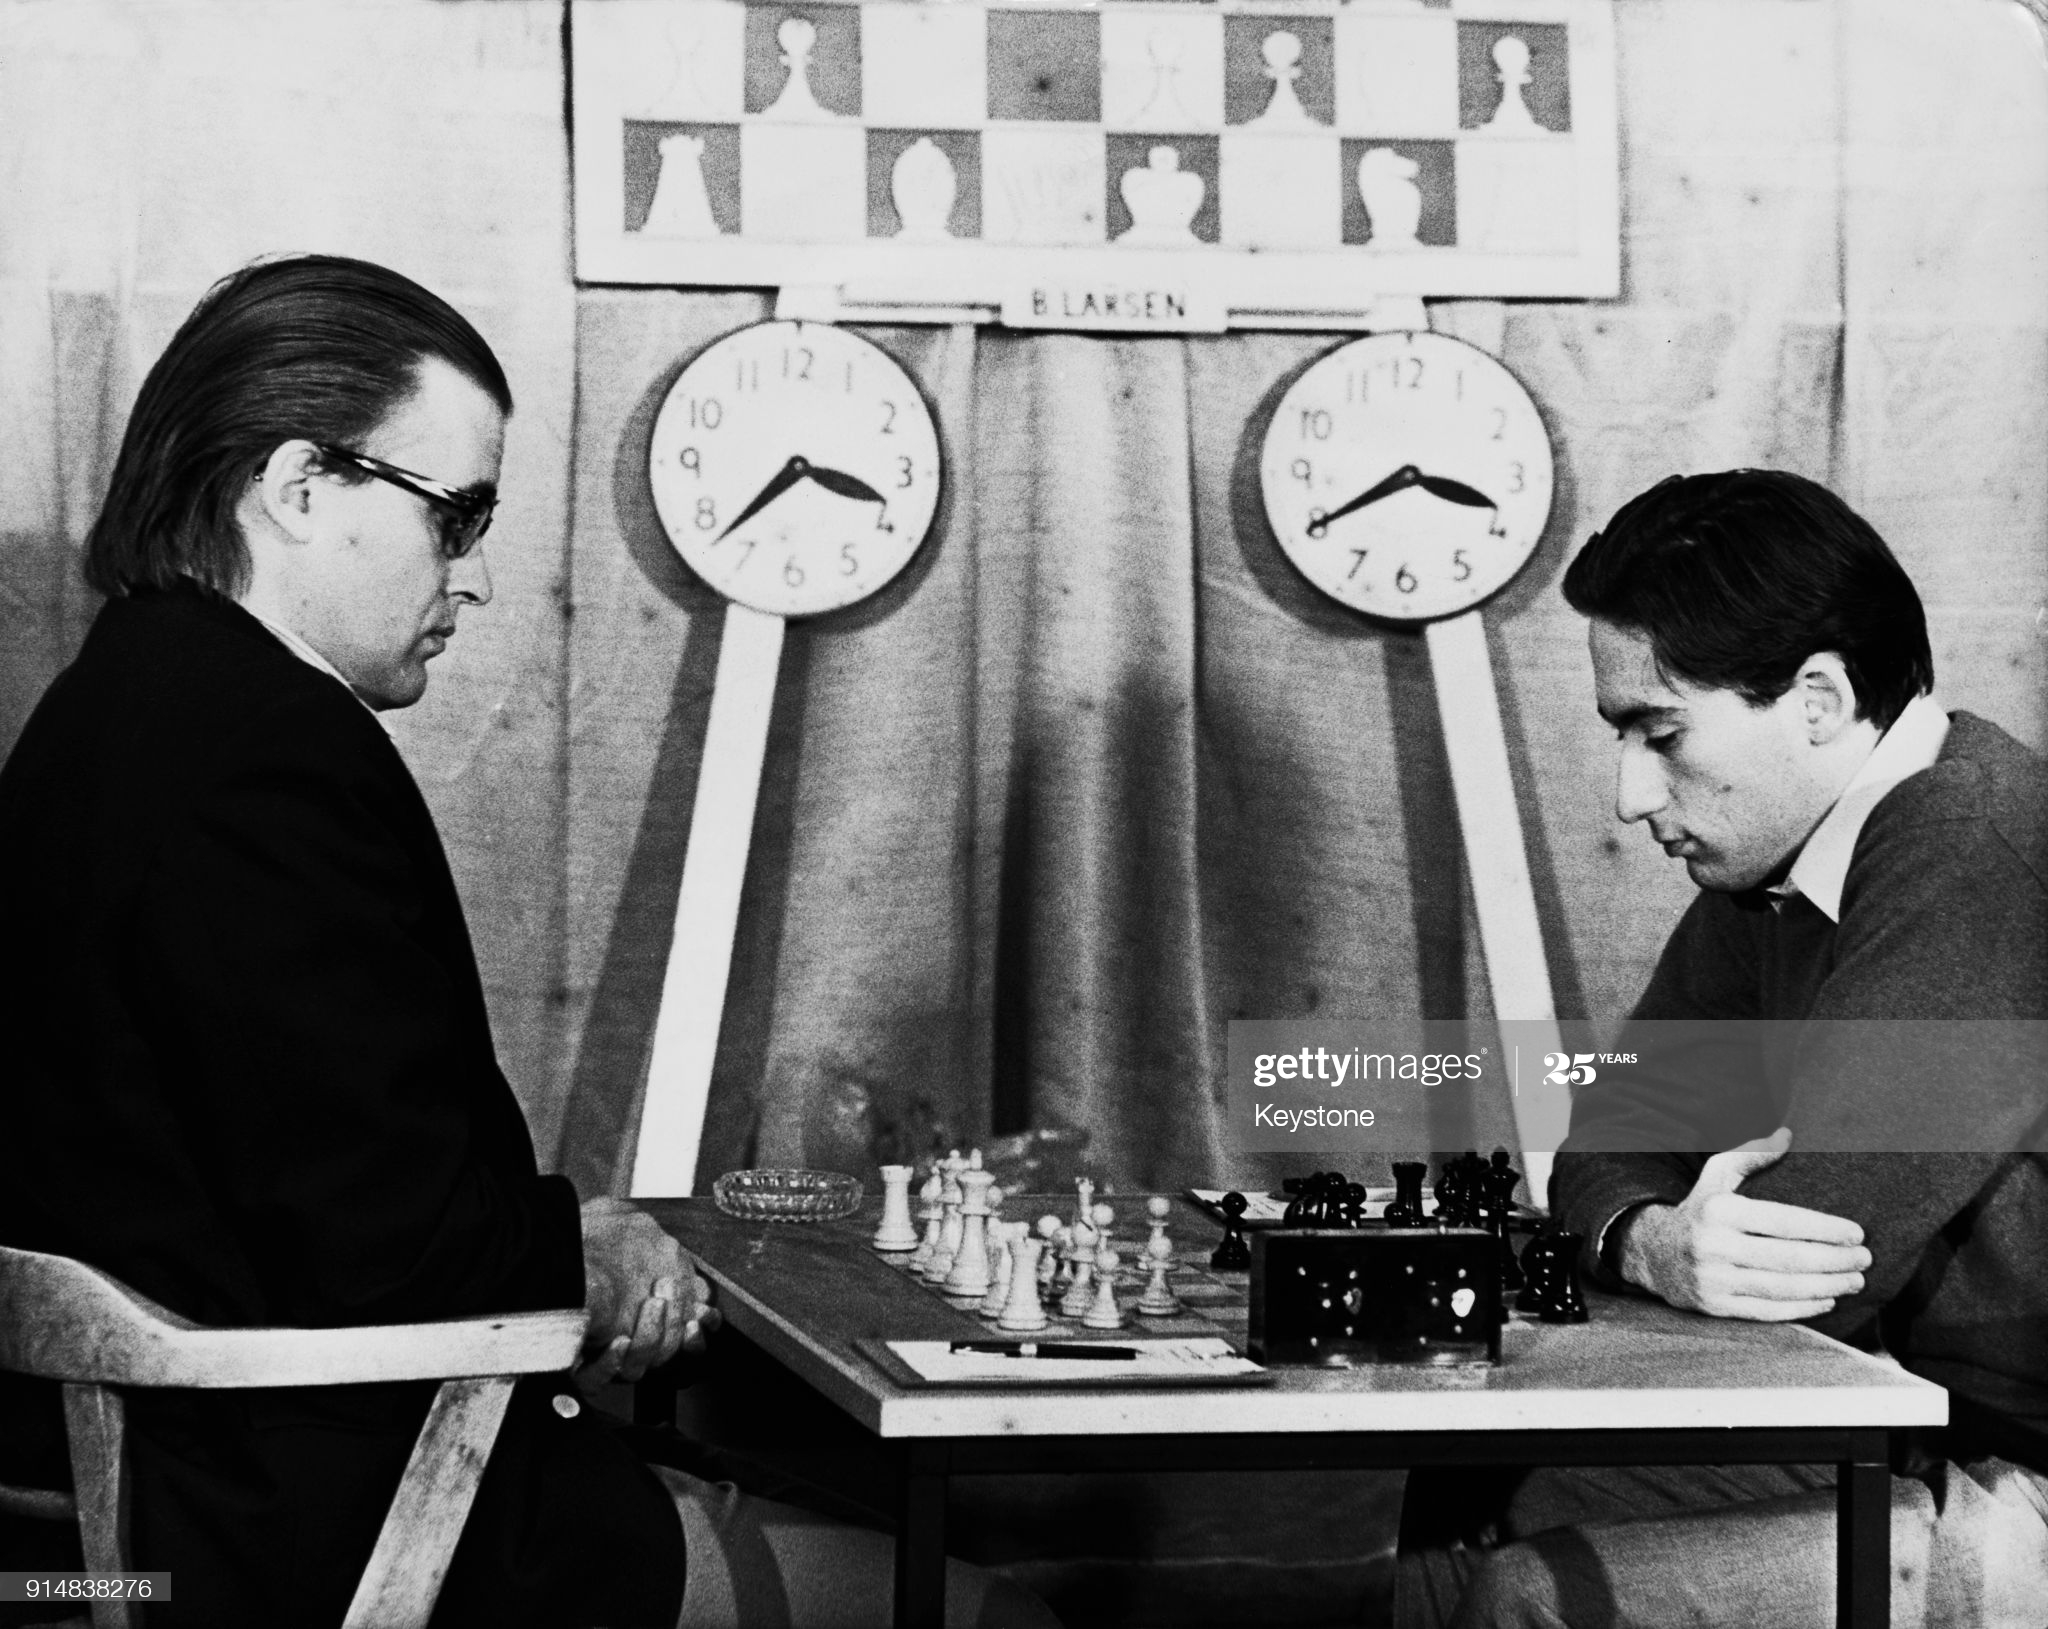 Danish chess grandmaster Bent Larsen (1935 - 2010, left) takes on English player William Hartston (right) during the annual Hastings International Chess Congress, UK, 13th January 1973. Larsen won the game. (Photo by Keystone/Hulton Archive/Getty Images)